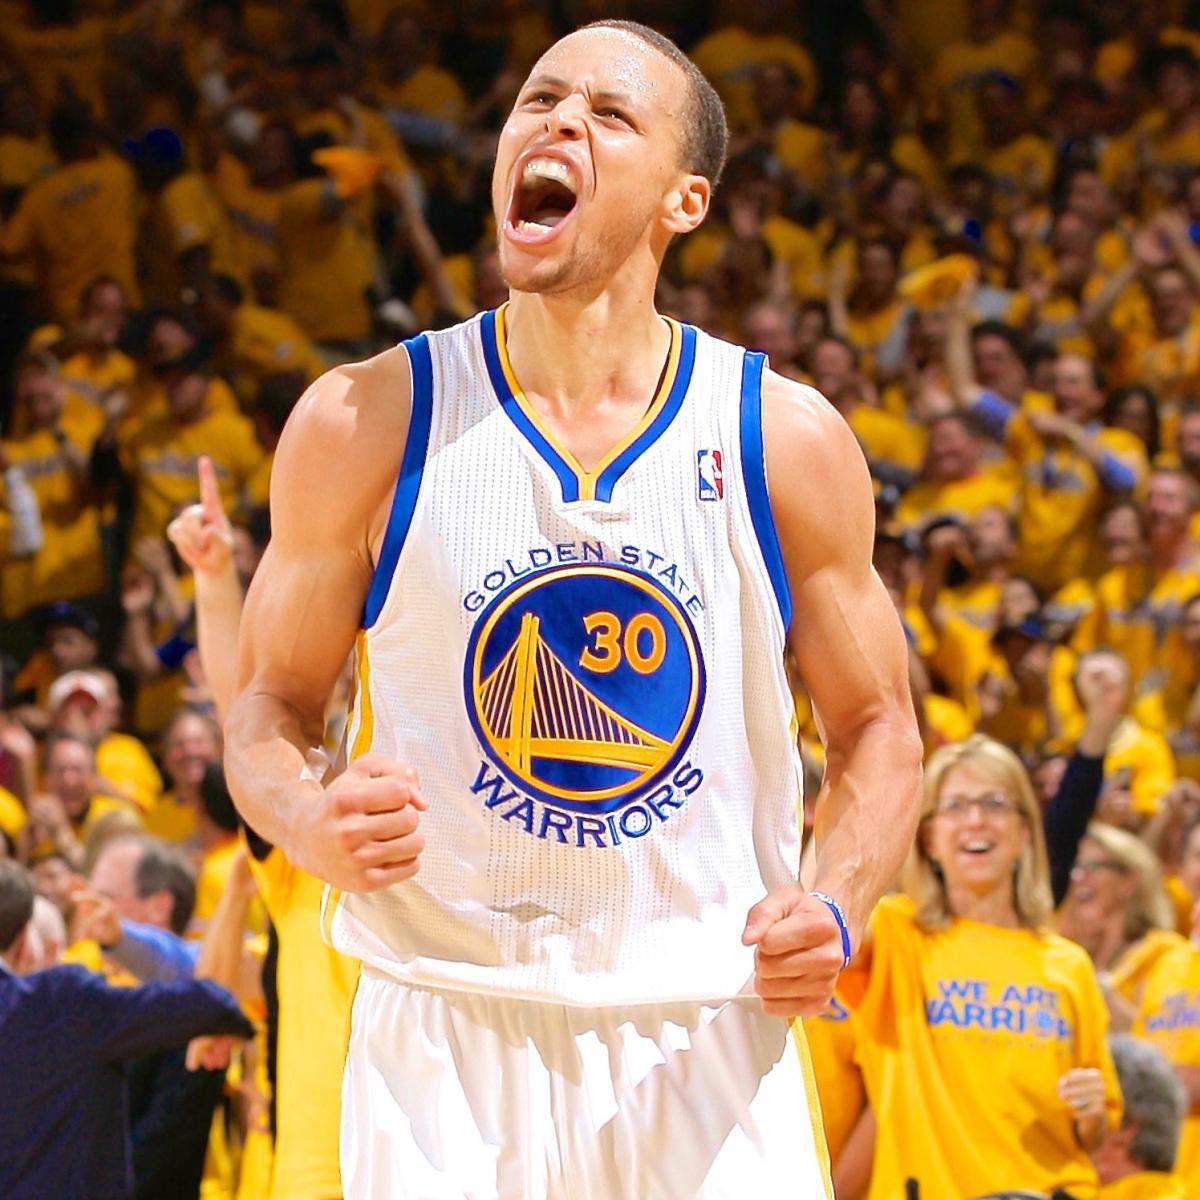 Stephen Curry: The NBA's Newest Superstar